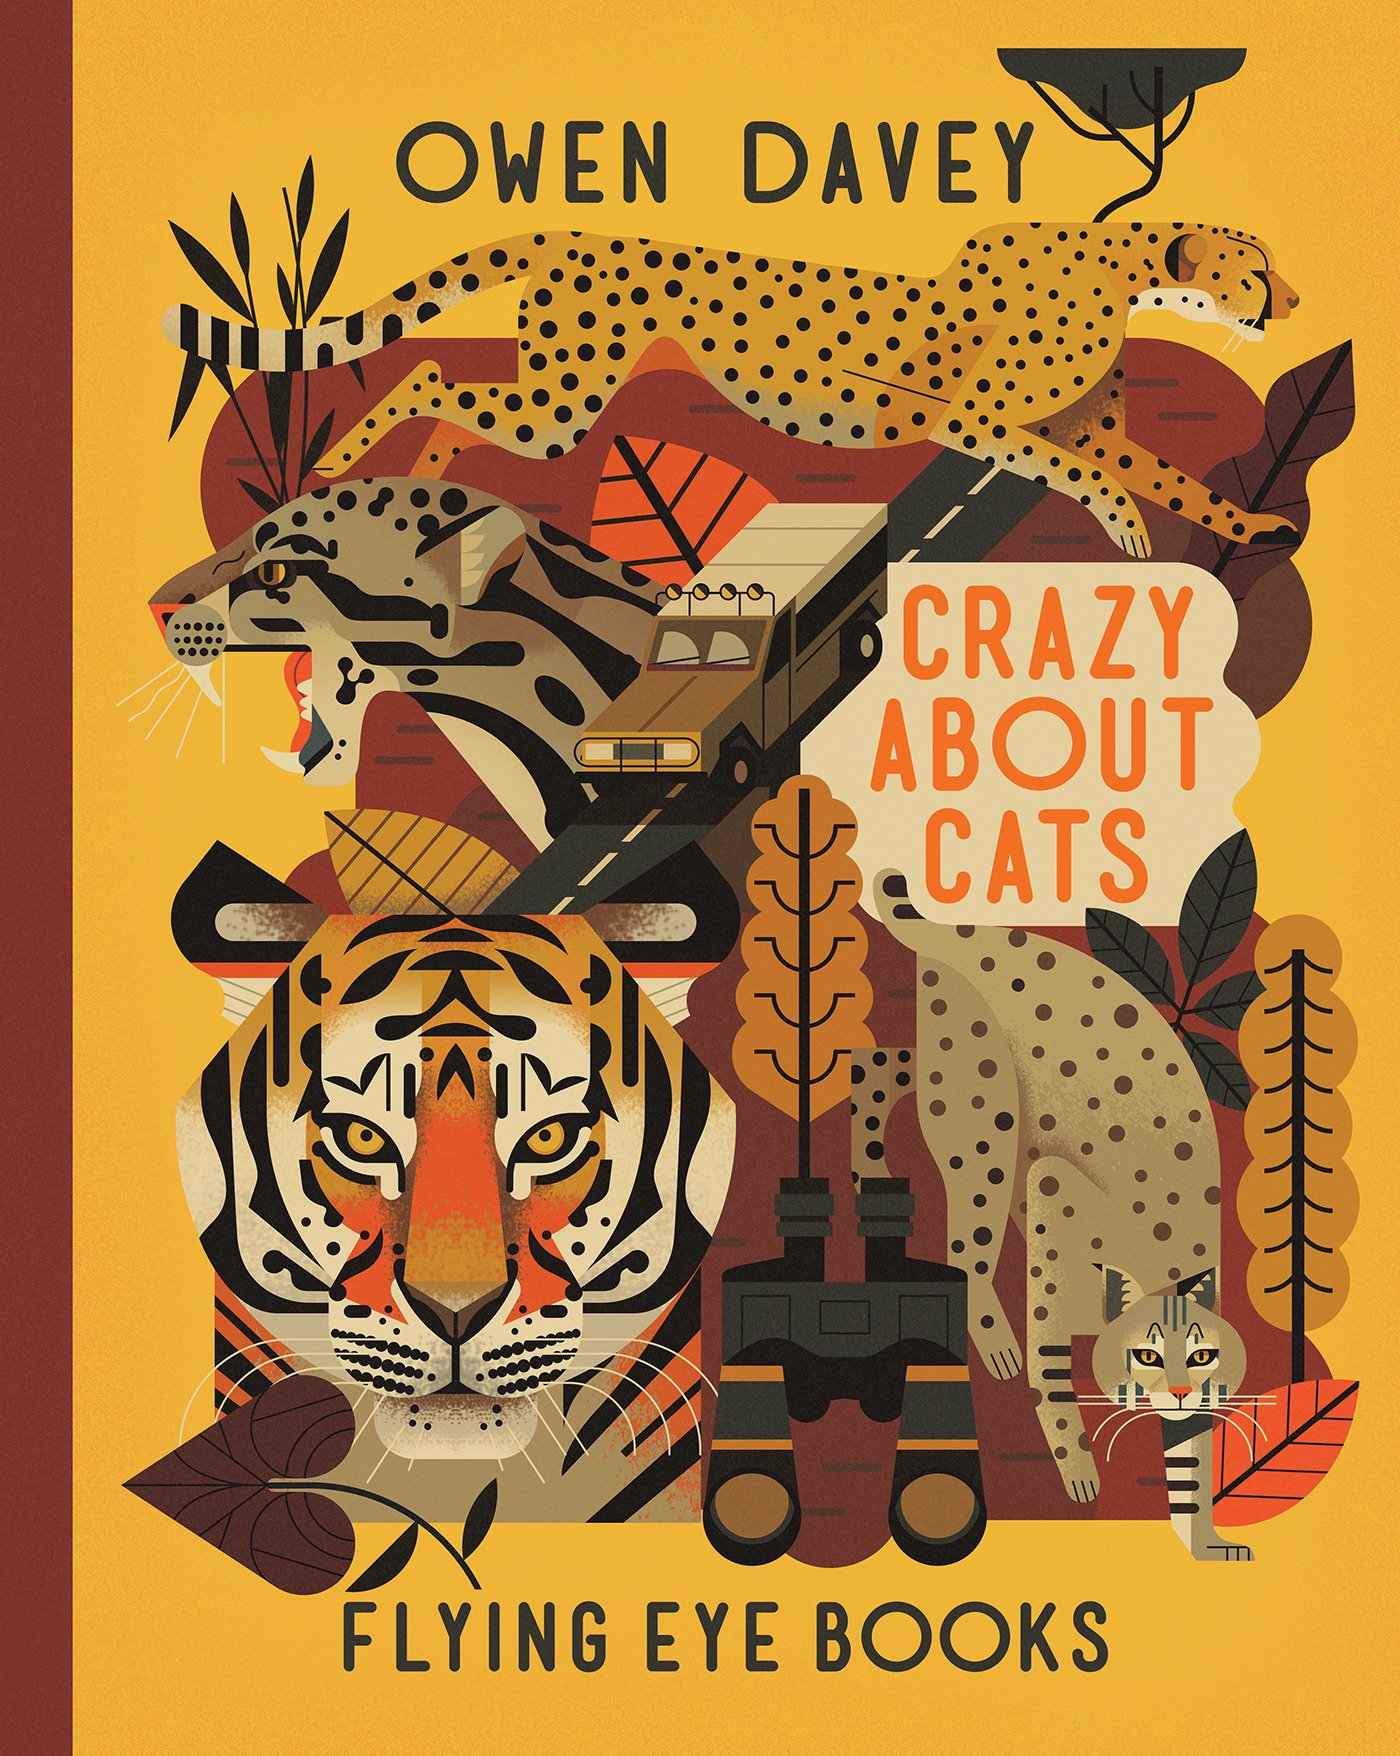 Crazy about cats owen davey.jpg